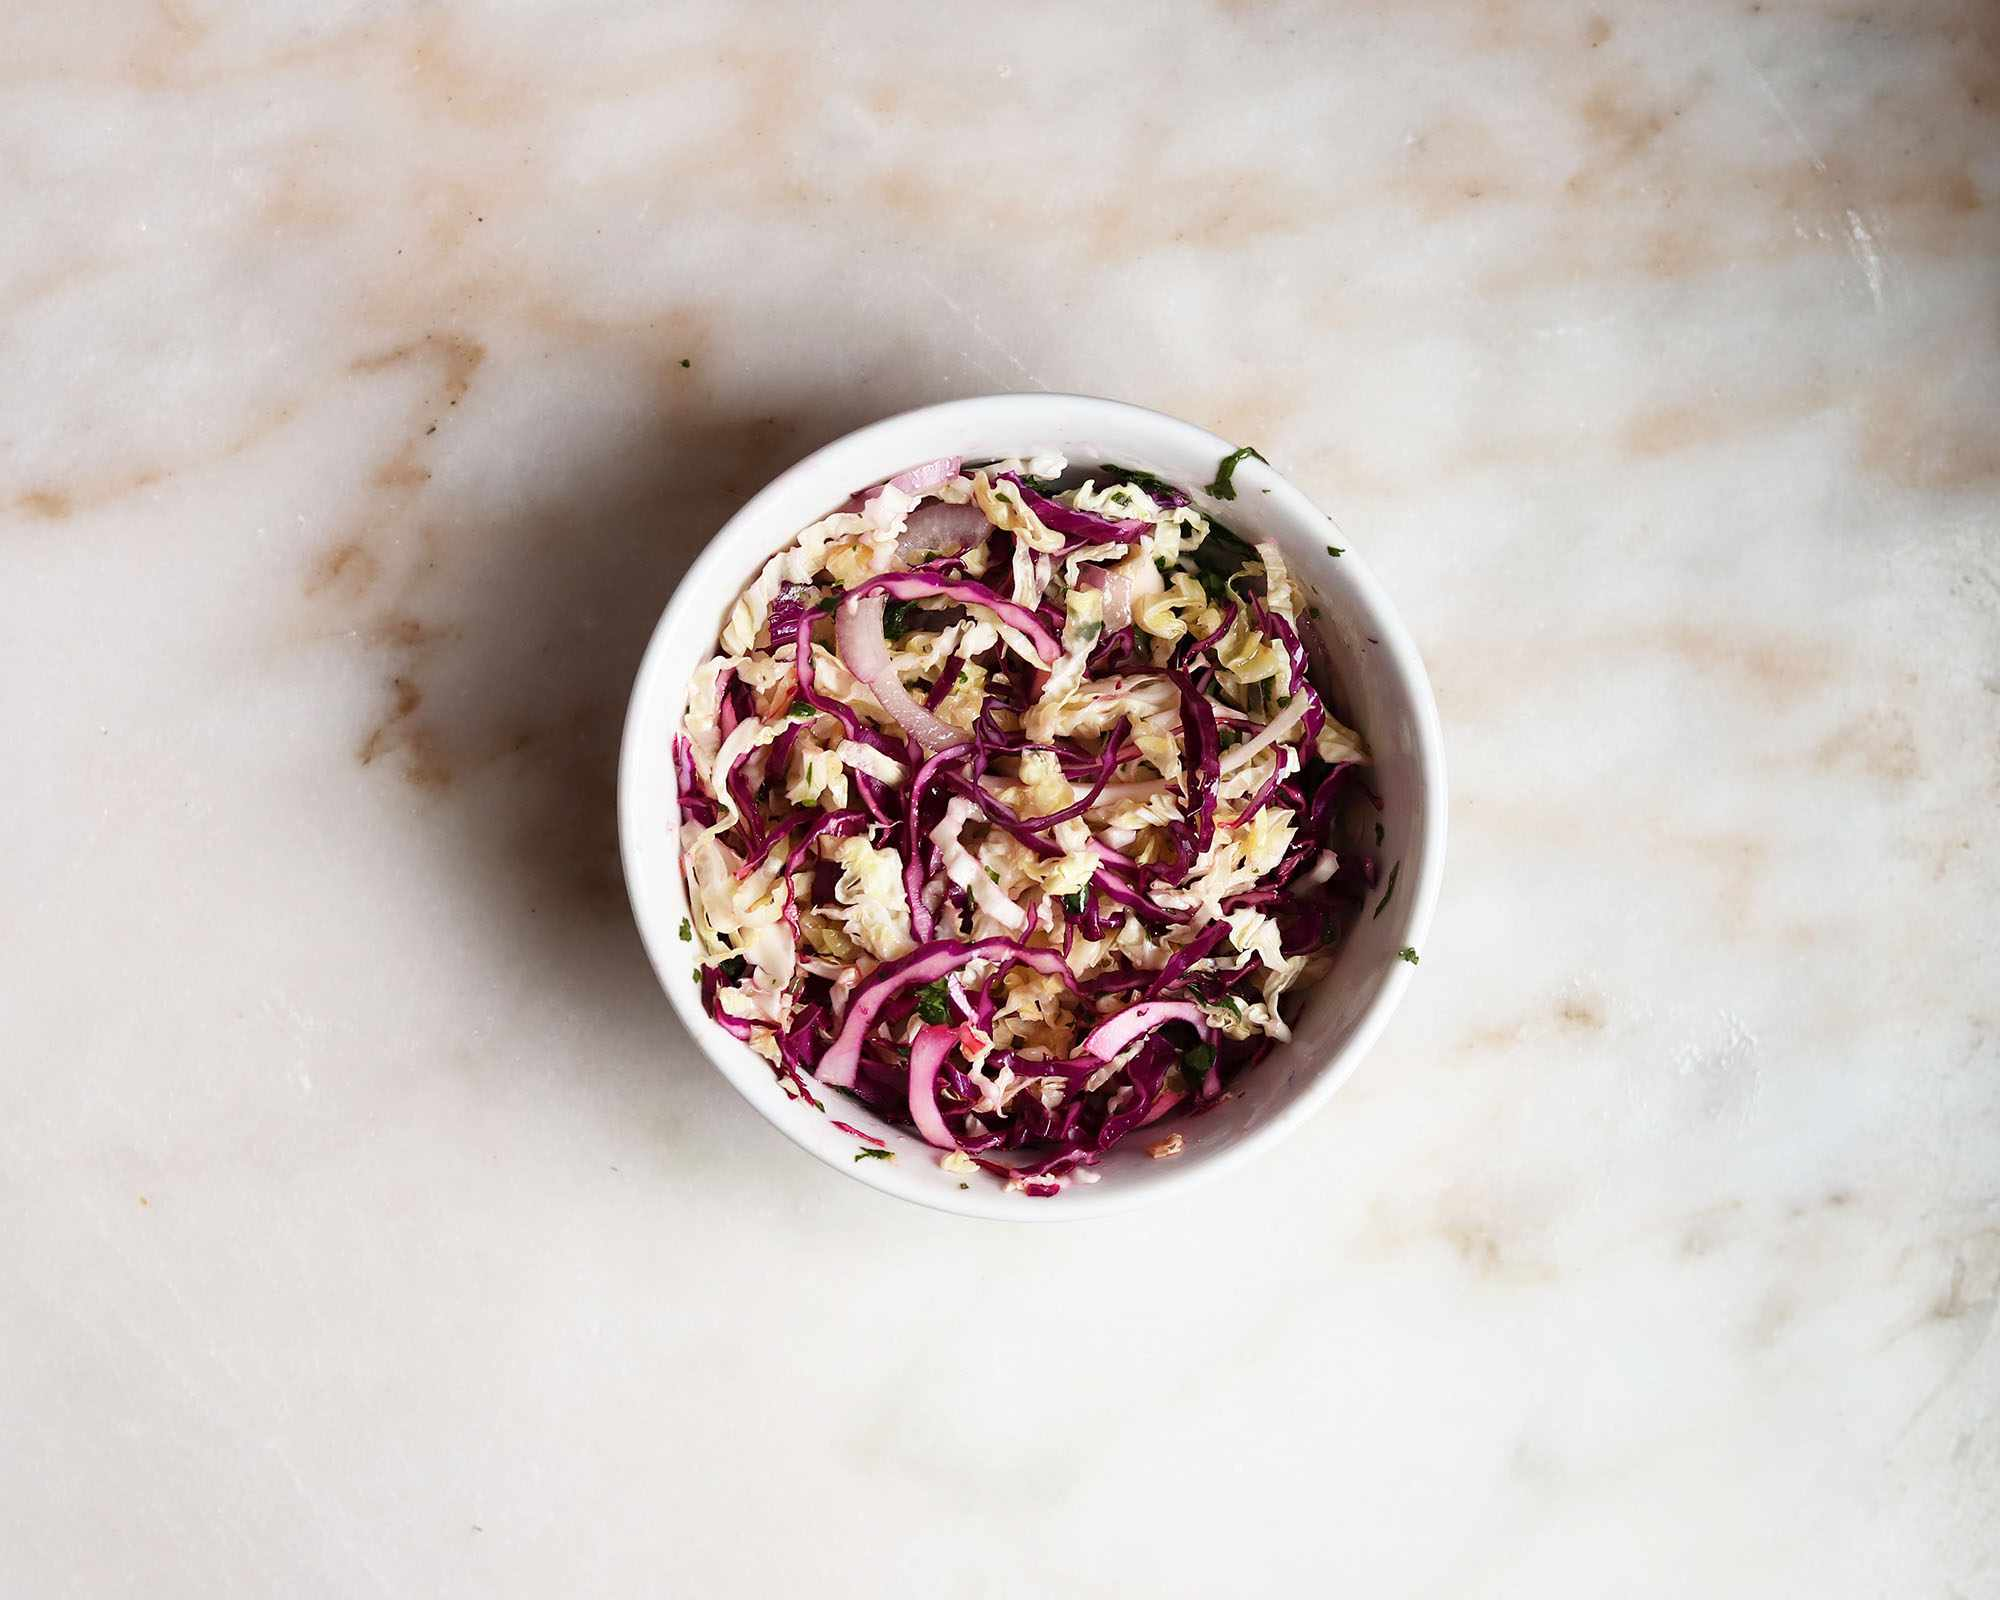 cabbage slaw mixed in a bowl